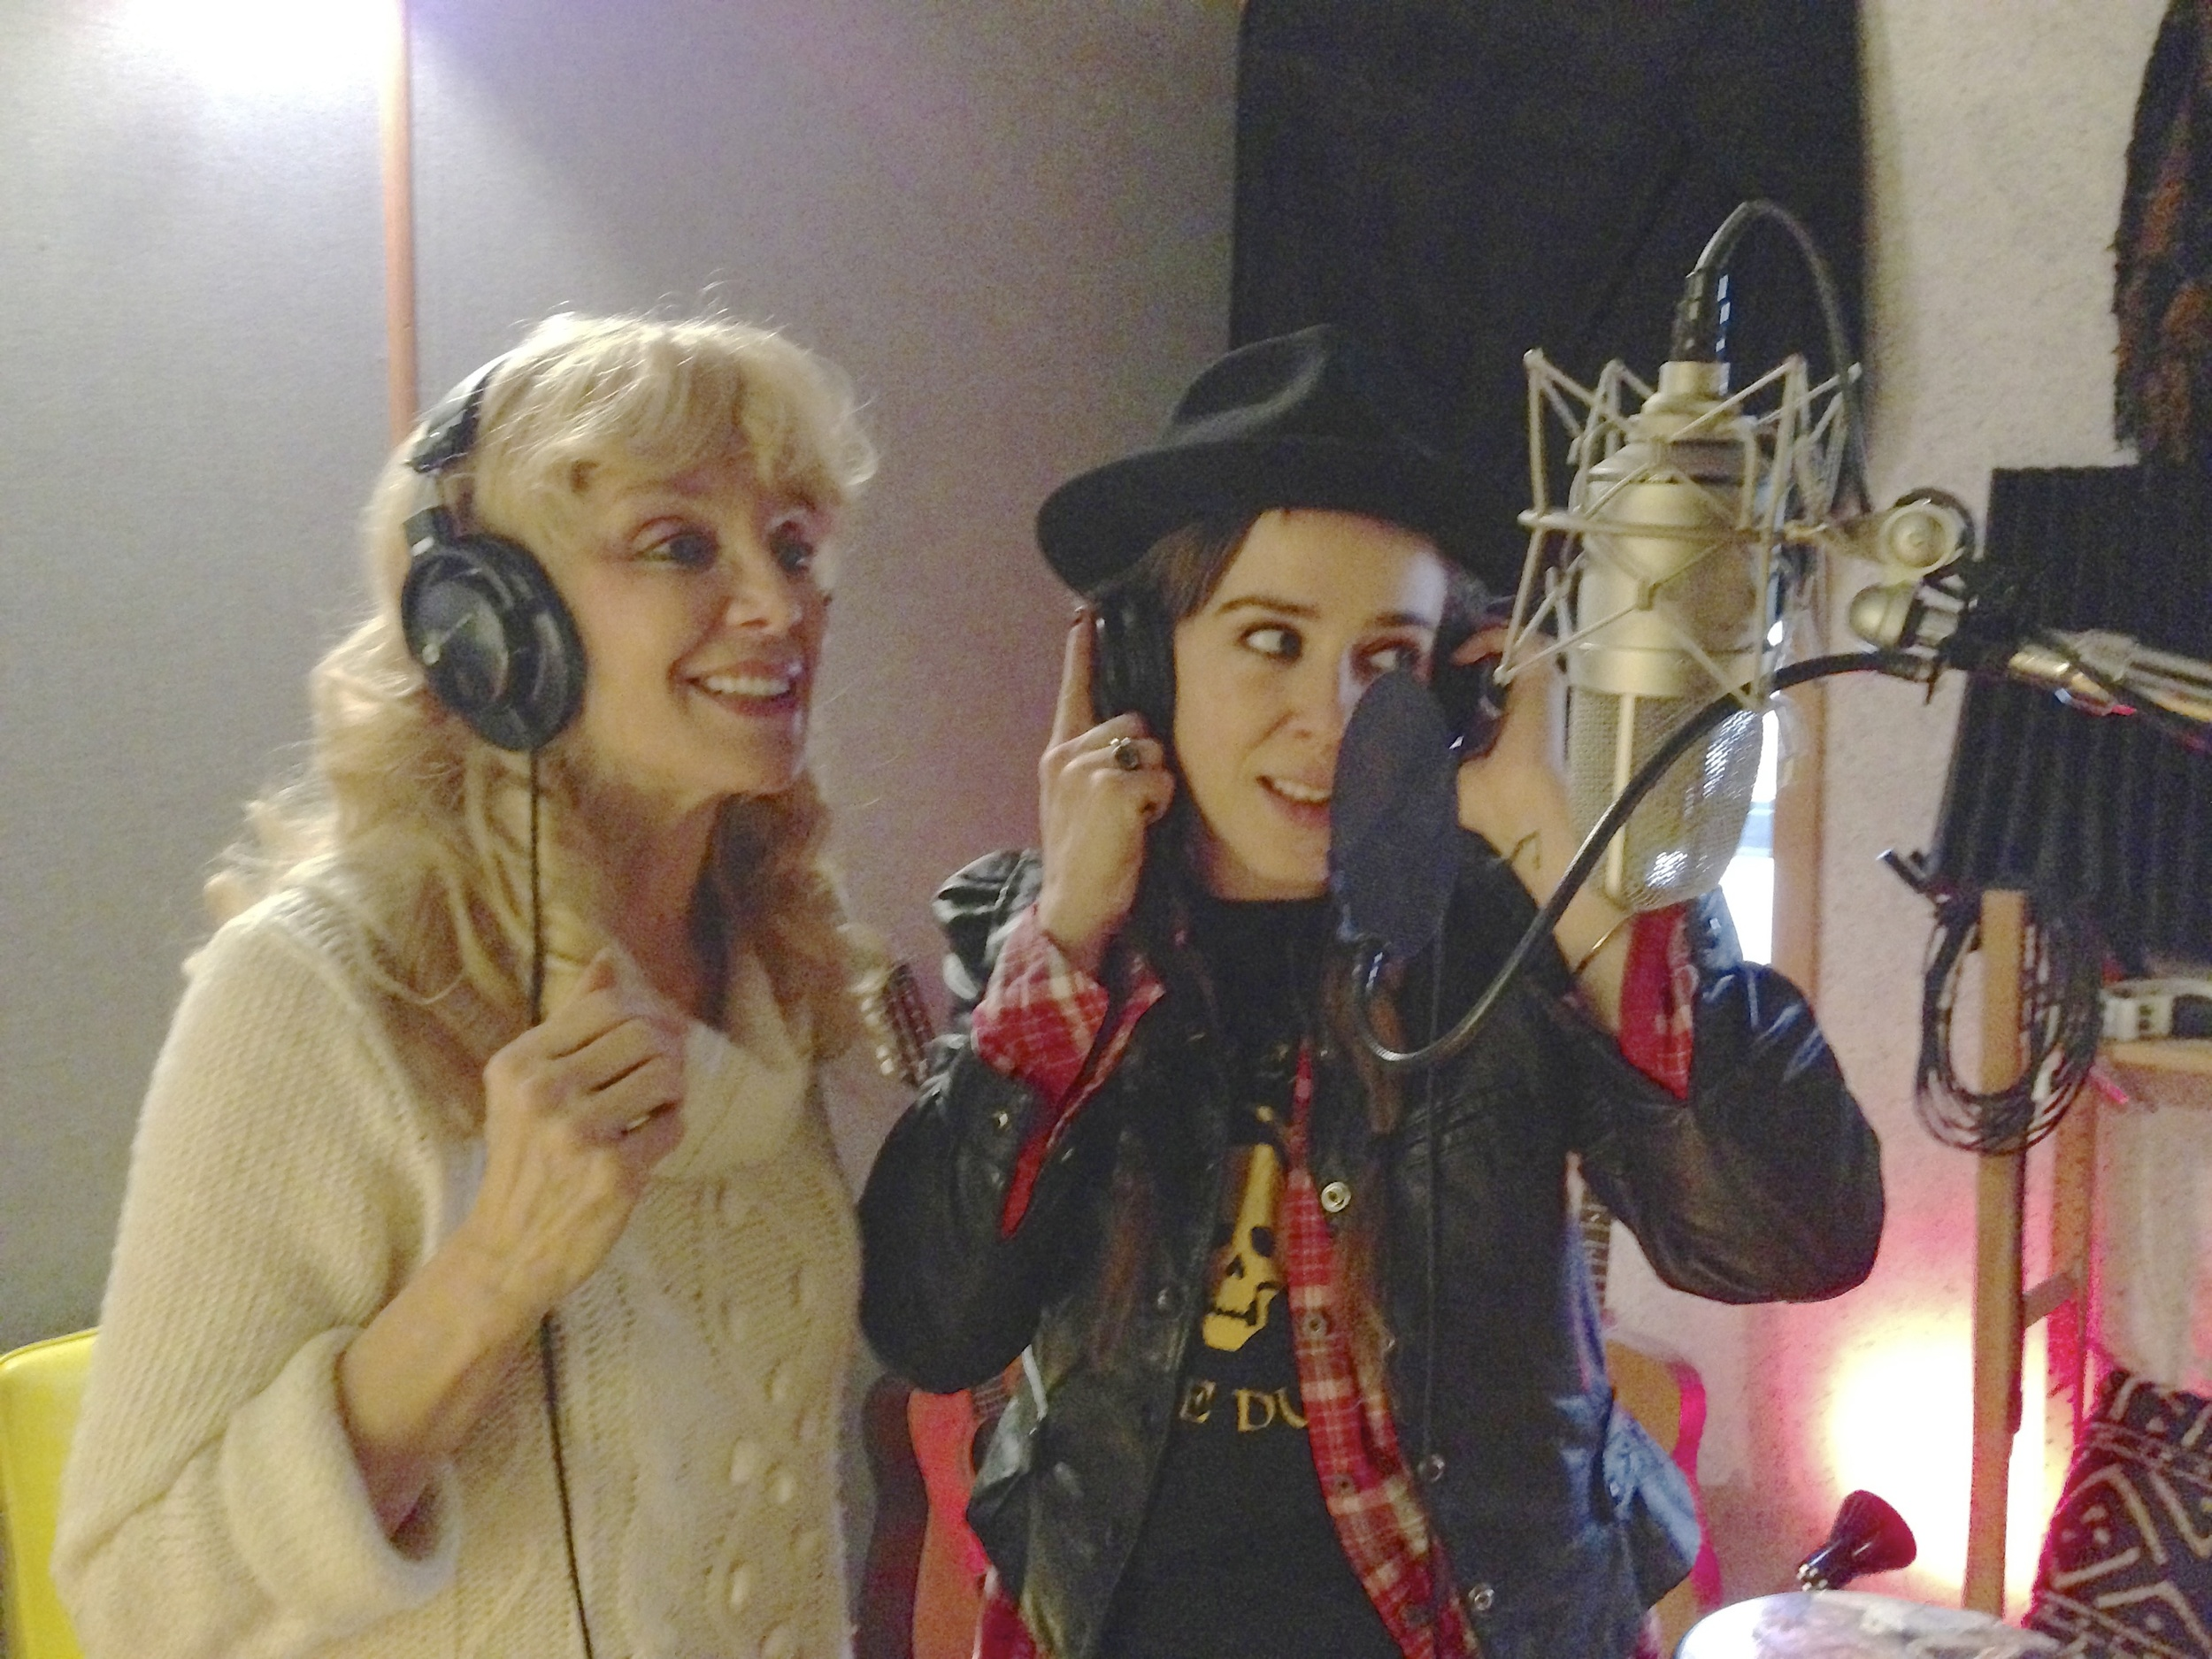 """2013 with Serena Ryder, during recording sessions for """"The Return…"""""""